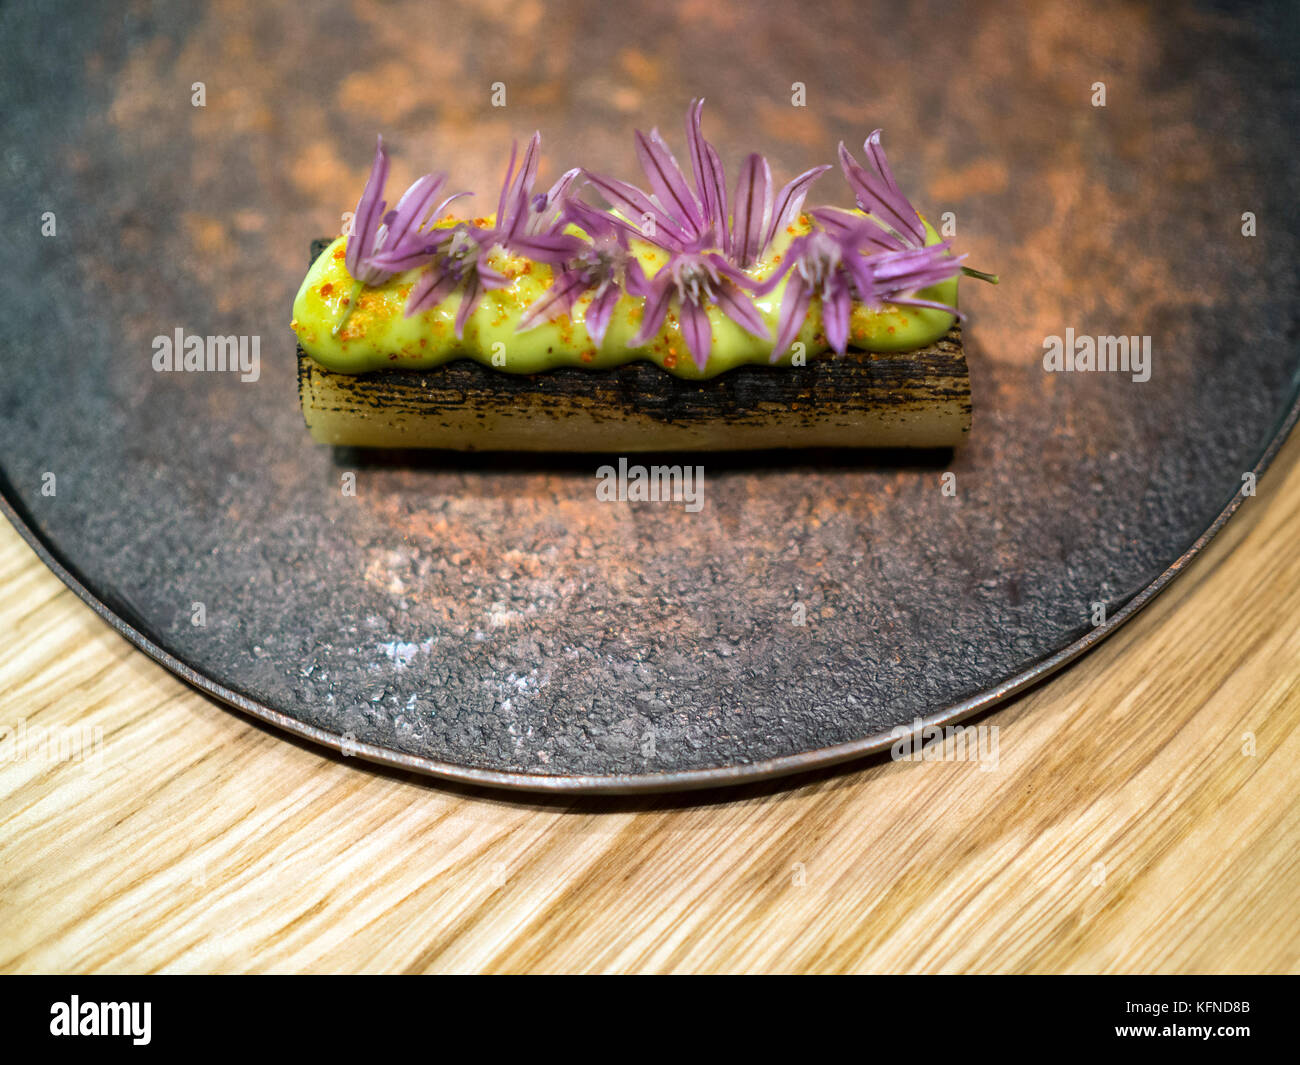 Charred leek with wild chive flowers cooked by Pai Holmberg from Bifångst, a two seat restaurant in Gothenberg. - Stock Image